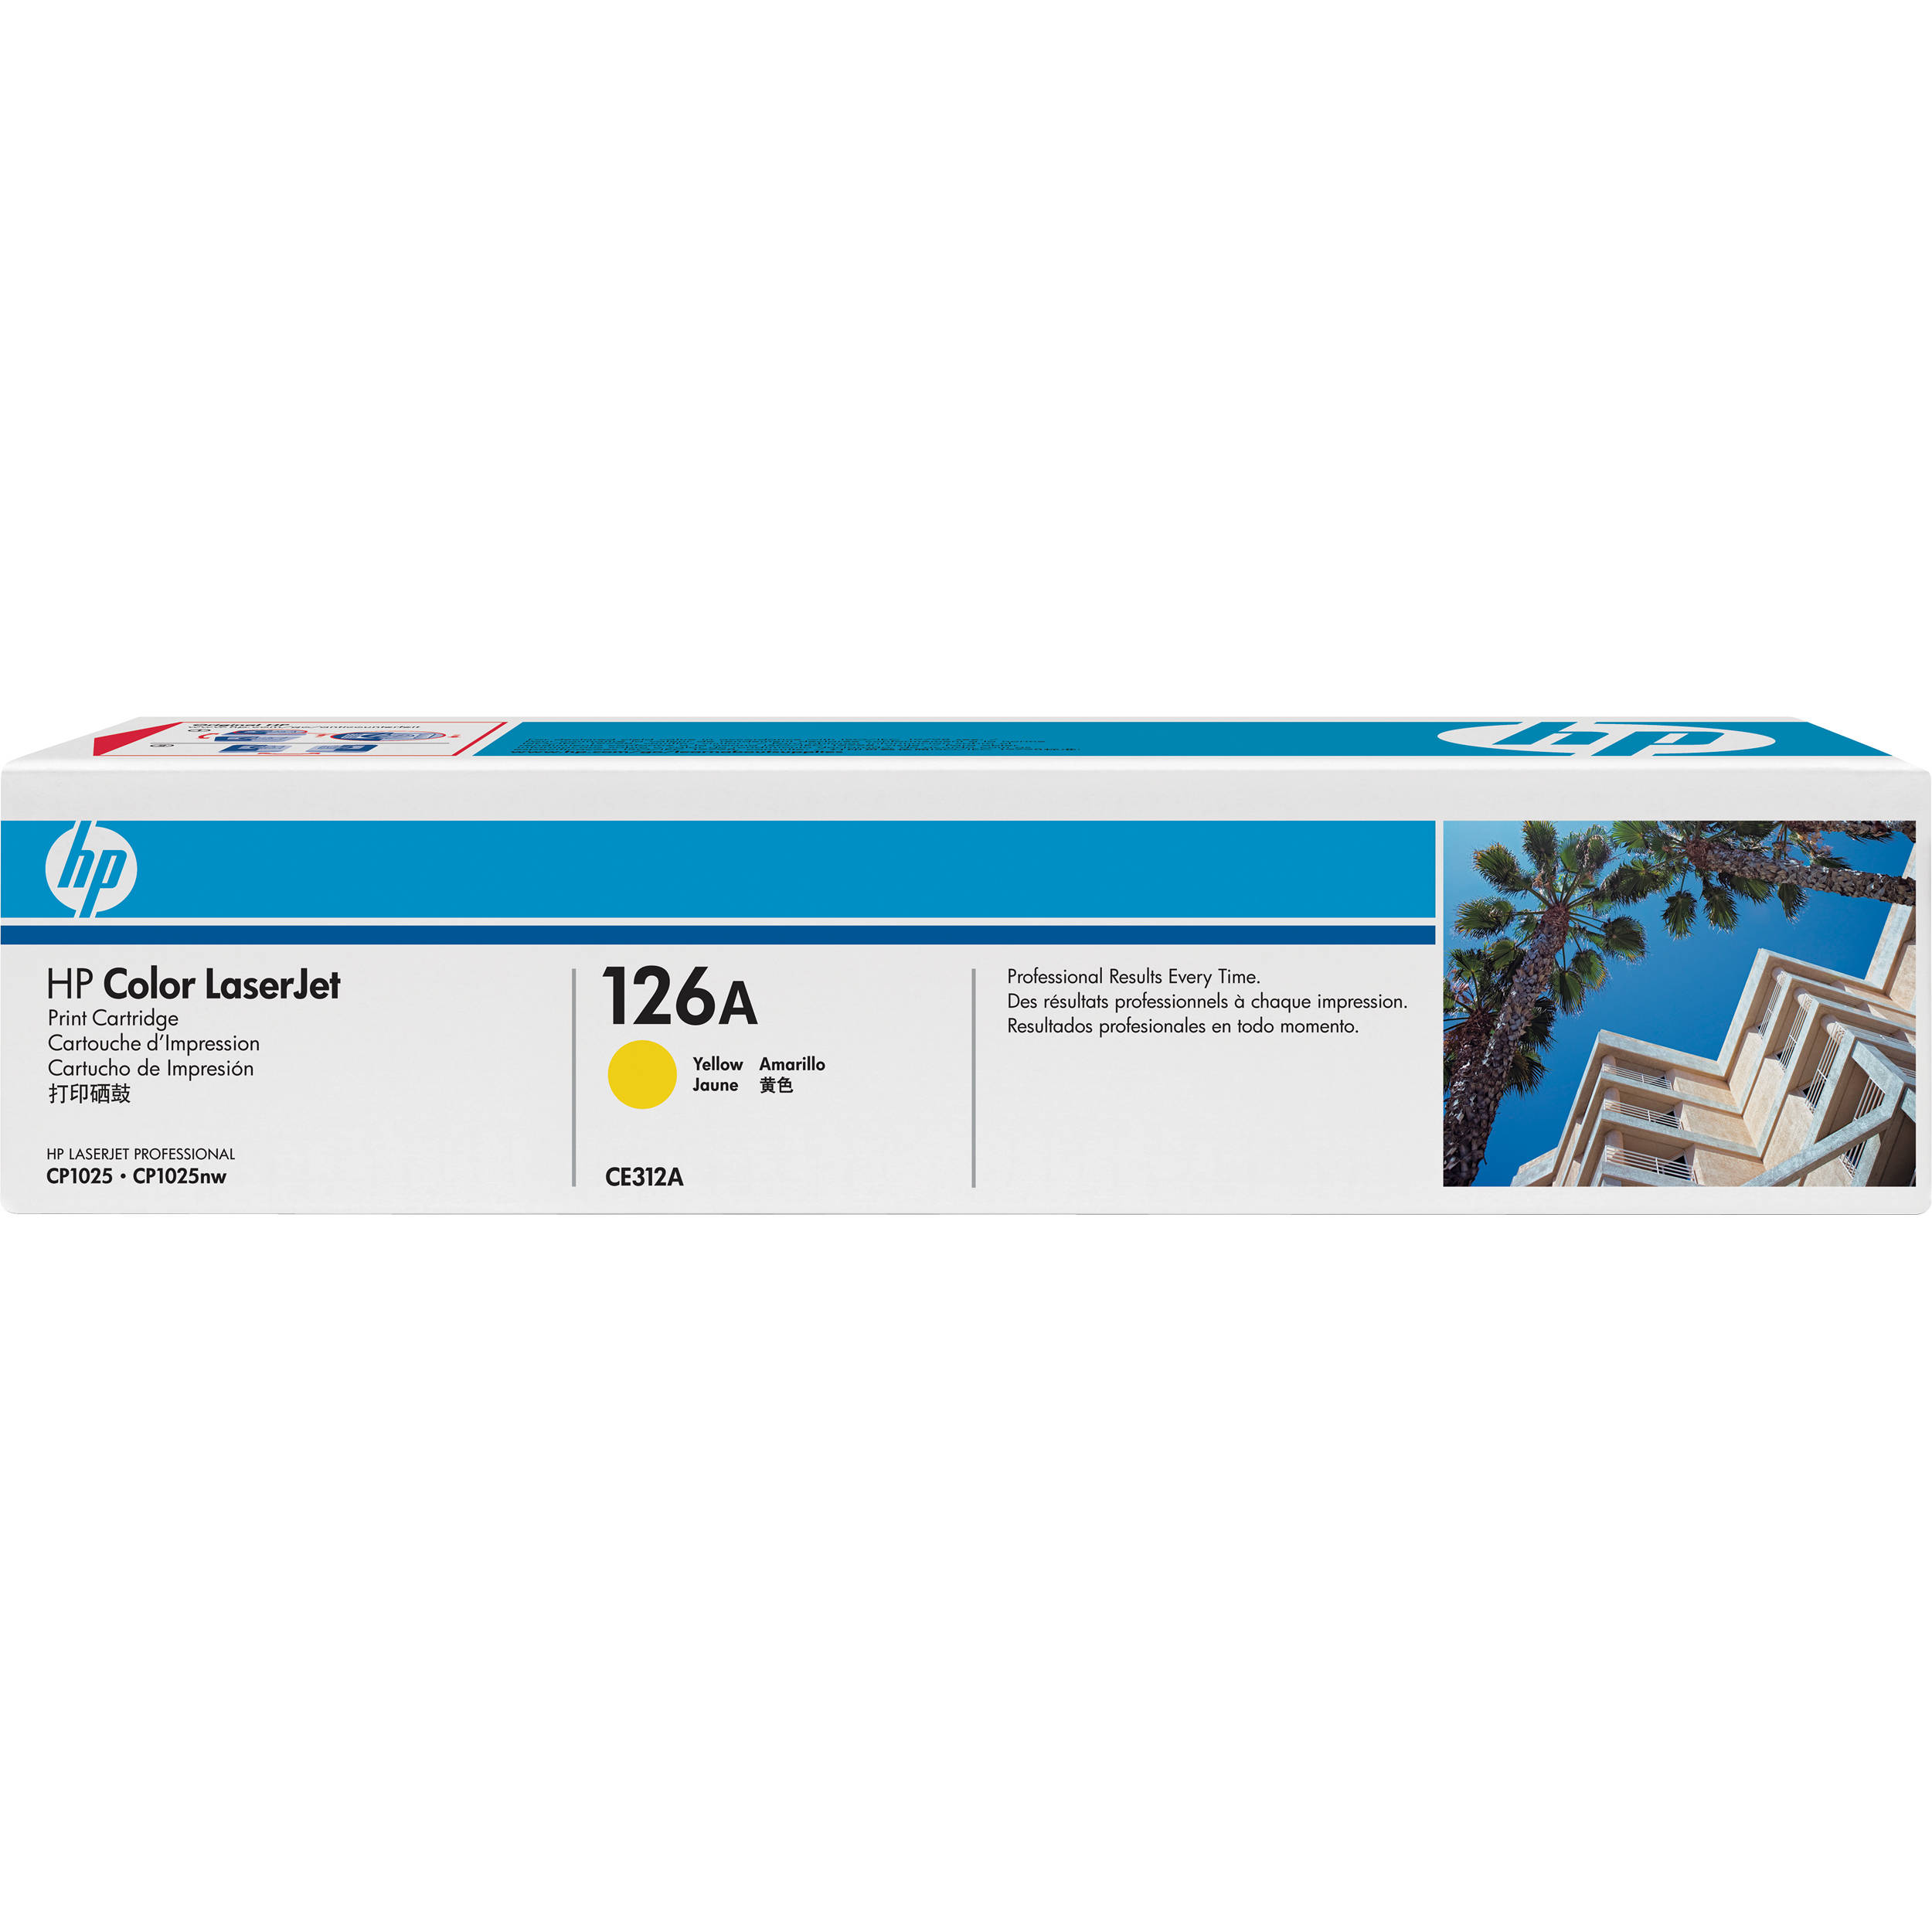 CE312A 126A Yellow Toner For LaserJet CP1025nw